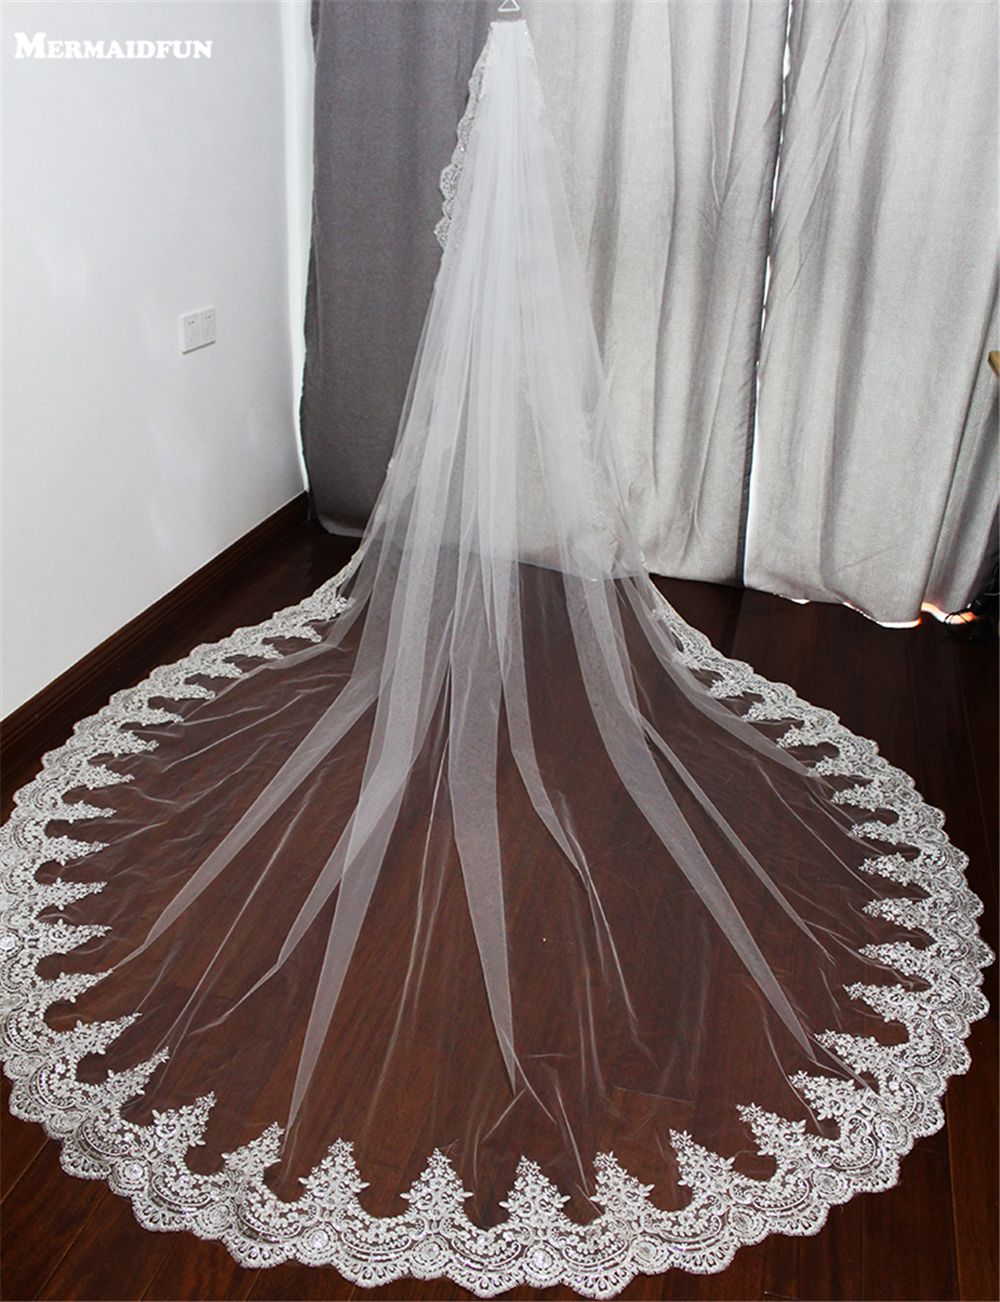 2019 1 Layer 3 Meter Bling Sequined Lace Edge Long Wedding Veil med Comb 3 M White Ivory Bridal Veil Voile Mariage